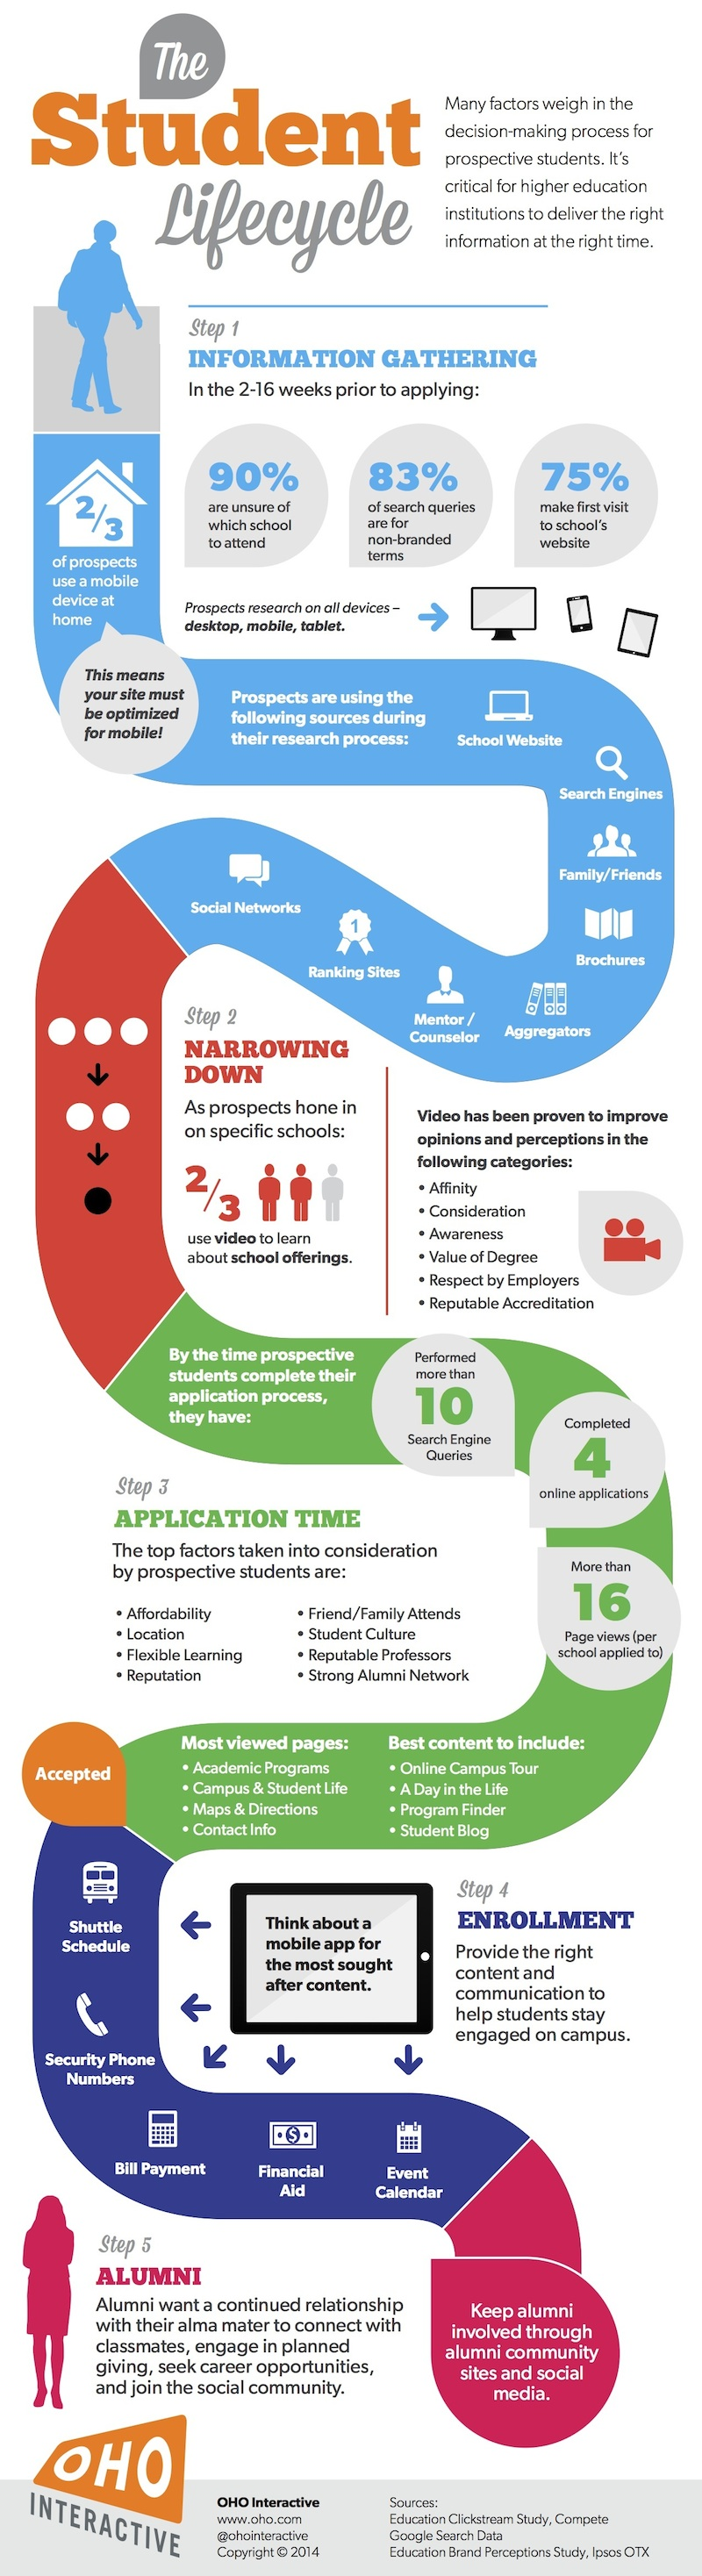 Higher Education Infographic: The Student Lifecycle